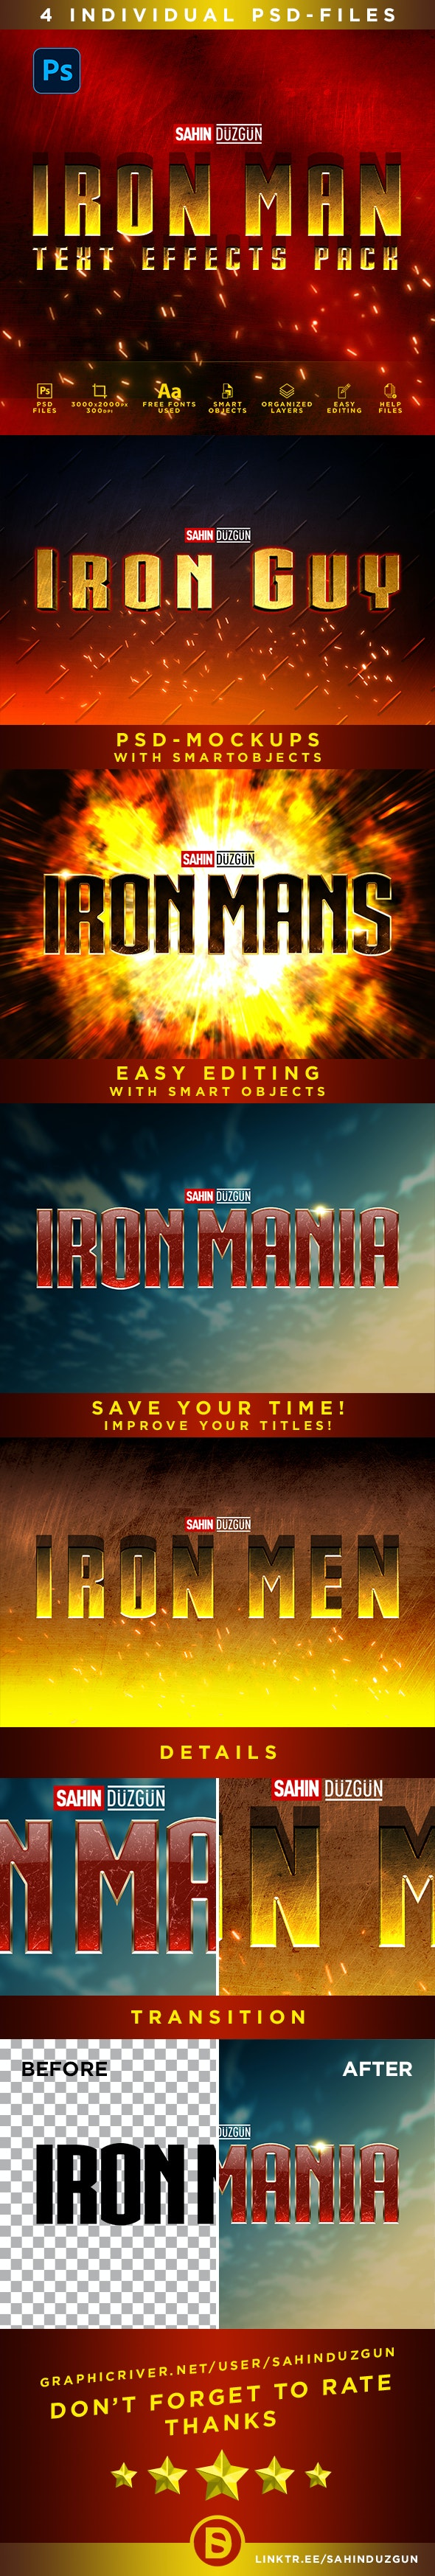 IRON MAN - MCU-Film Series | Text-Effects/Mockups | Template-Package - Text Effects Actions